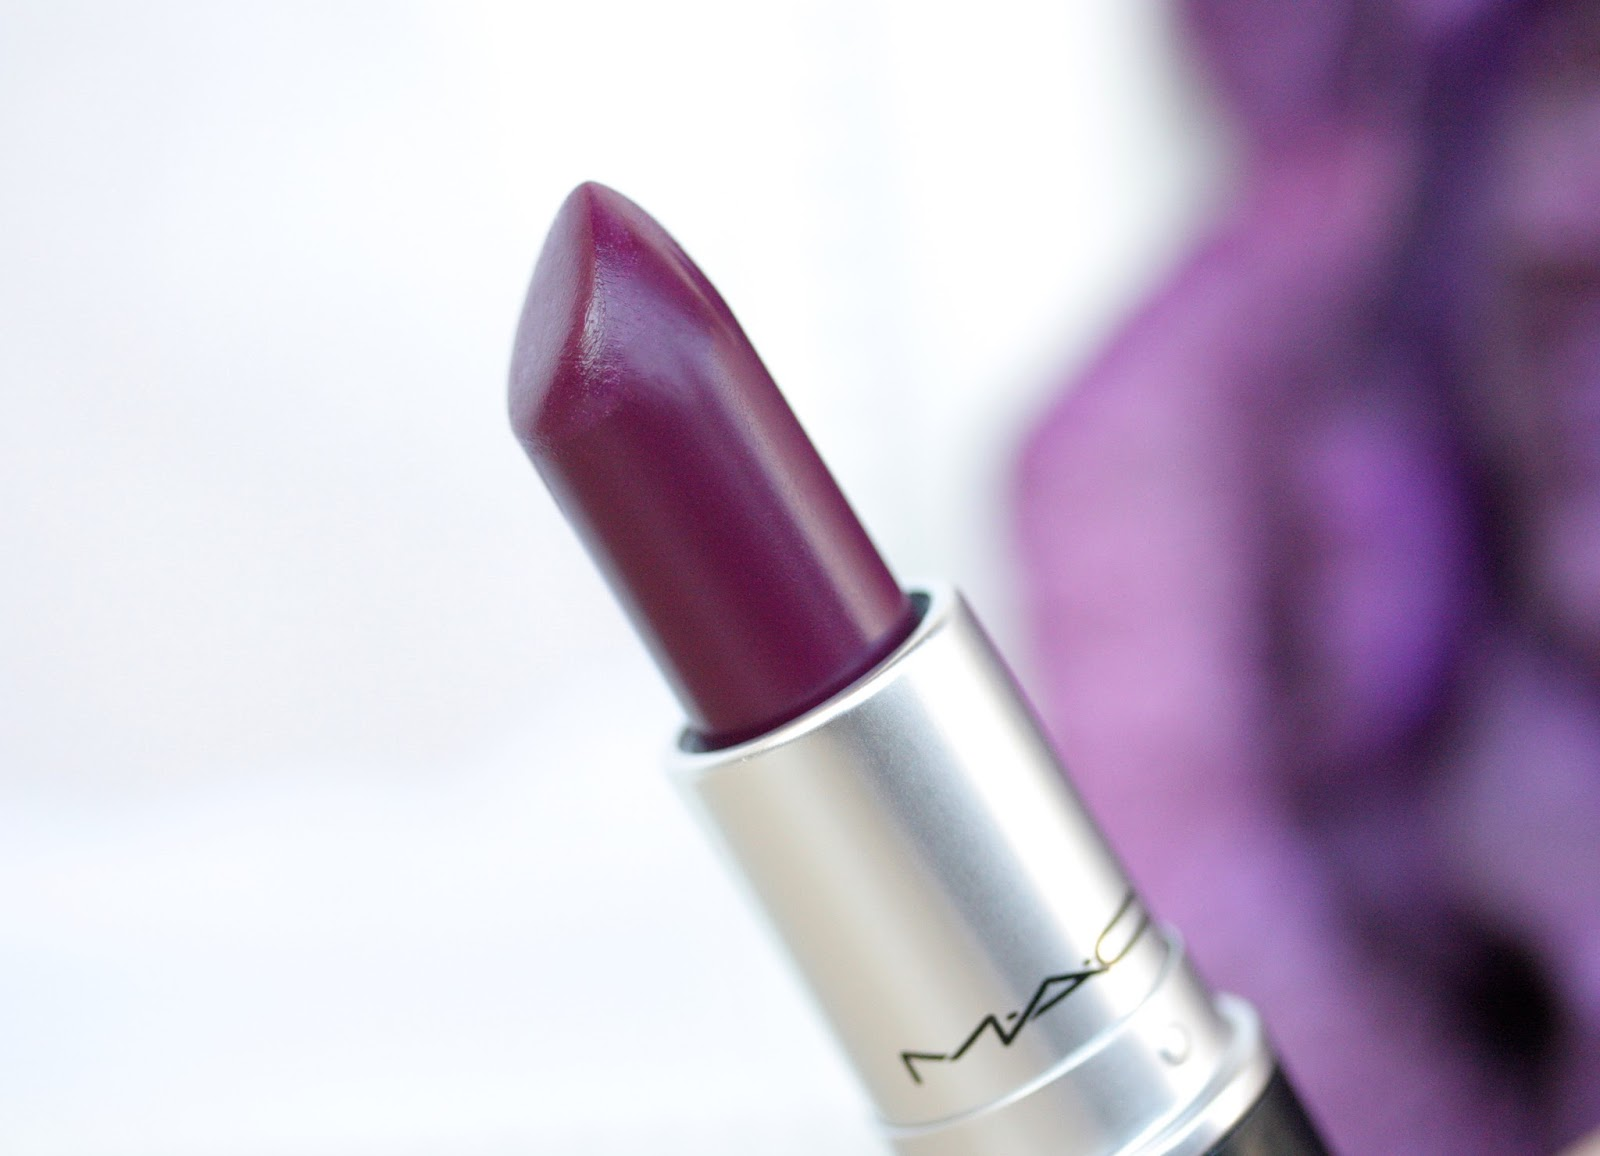 mac rebel lipstick review and swatches rosychicc